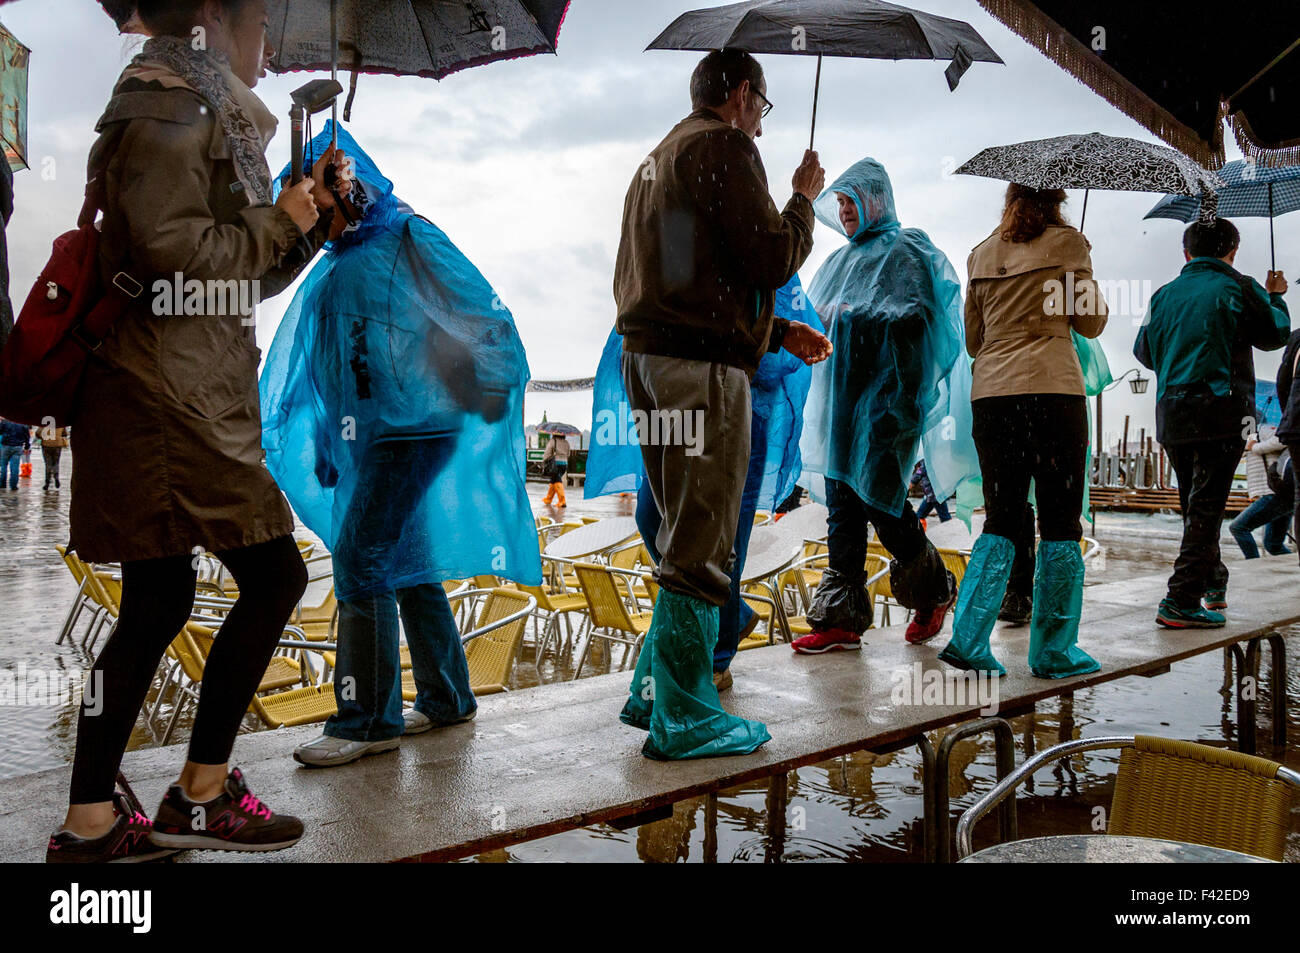 St Marks Square, Venice, Italy. 14th October 2015. People in Piazza San Marco wearing rain ponchos and galoshes - Stock Image